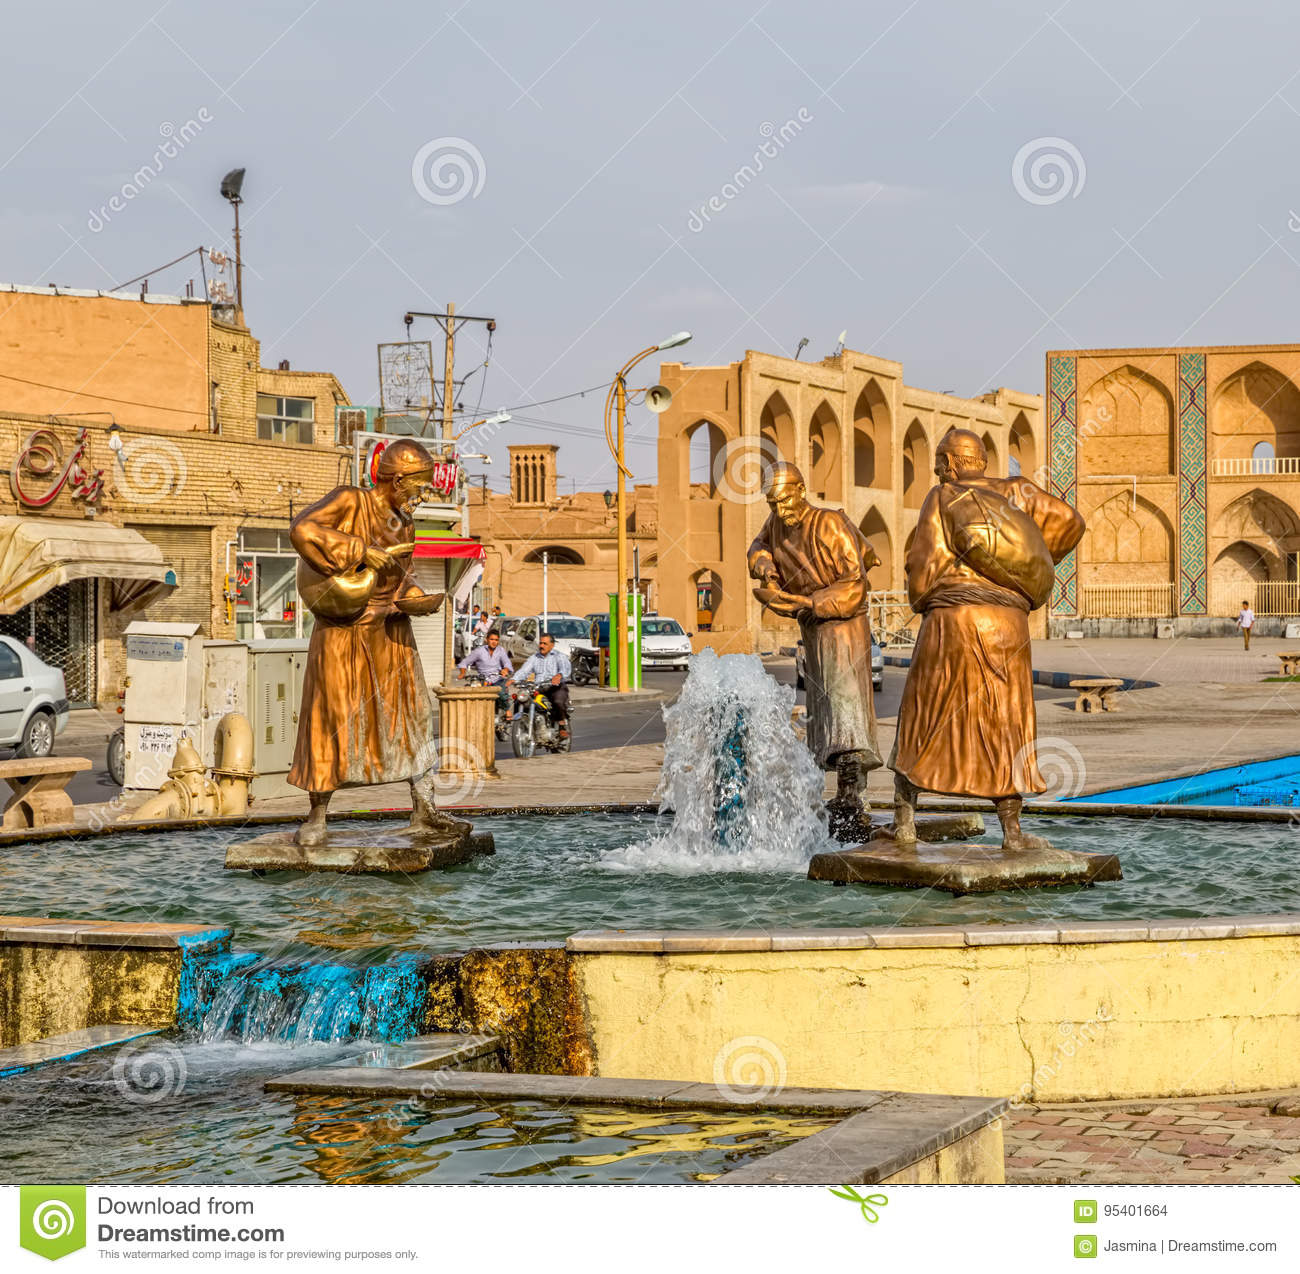 Image of: Couple Three Old Travelers Statues In Yazd Dreamstimecom Three Old Travelers Statues In Yazd Editorial Stock Image Image Of